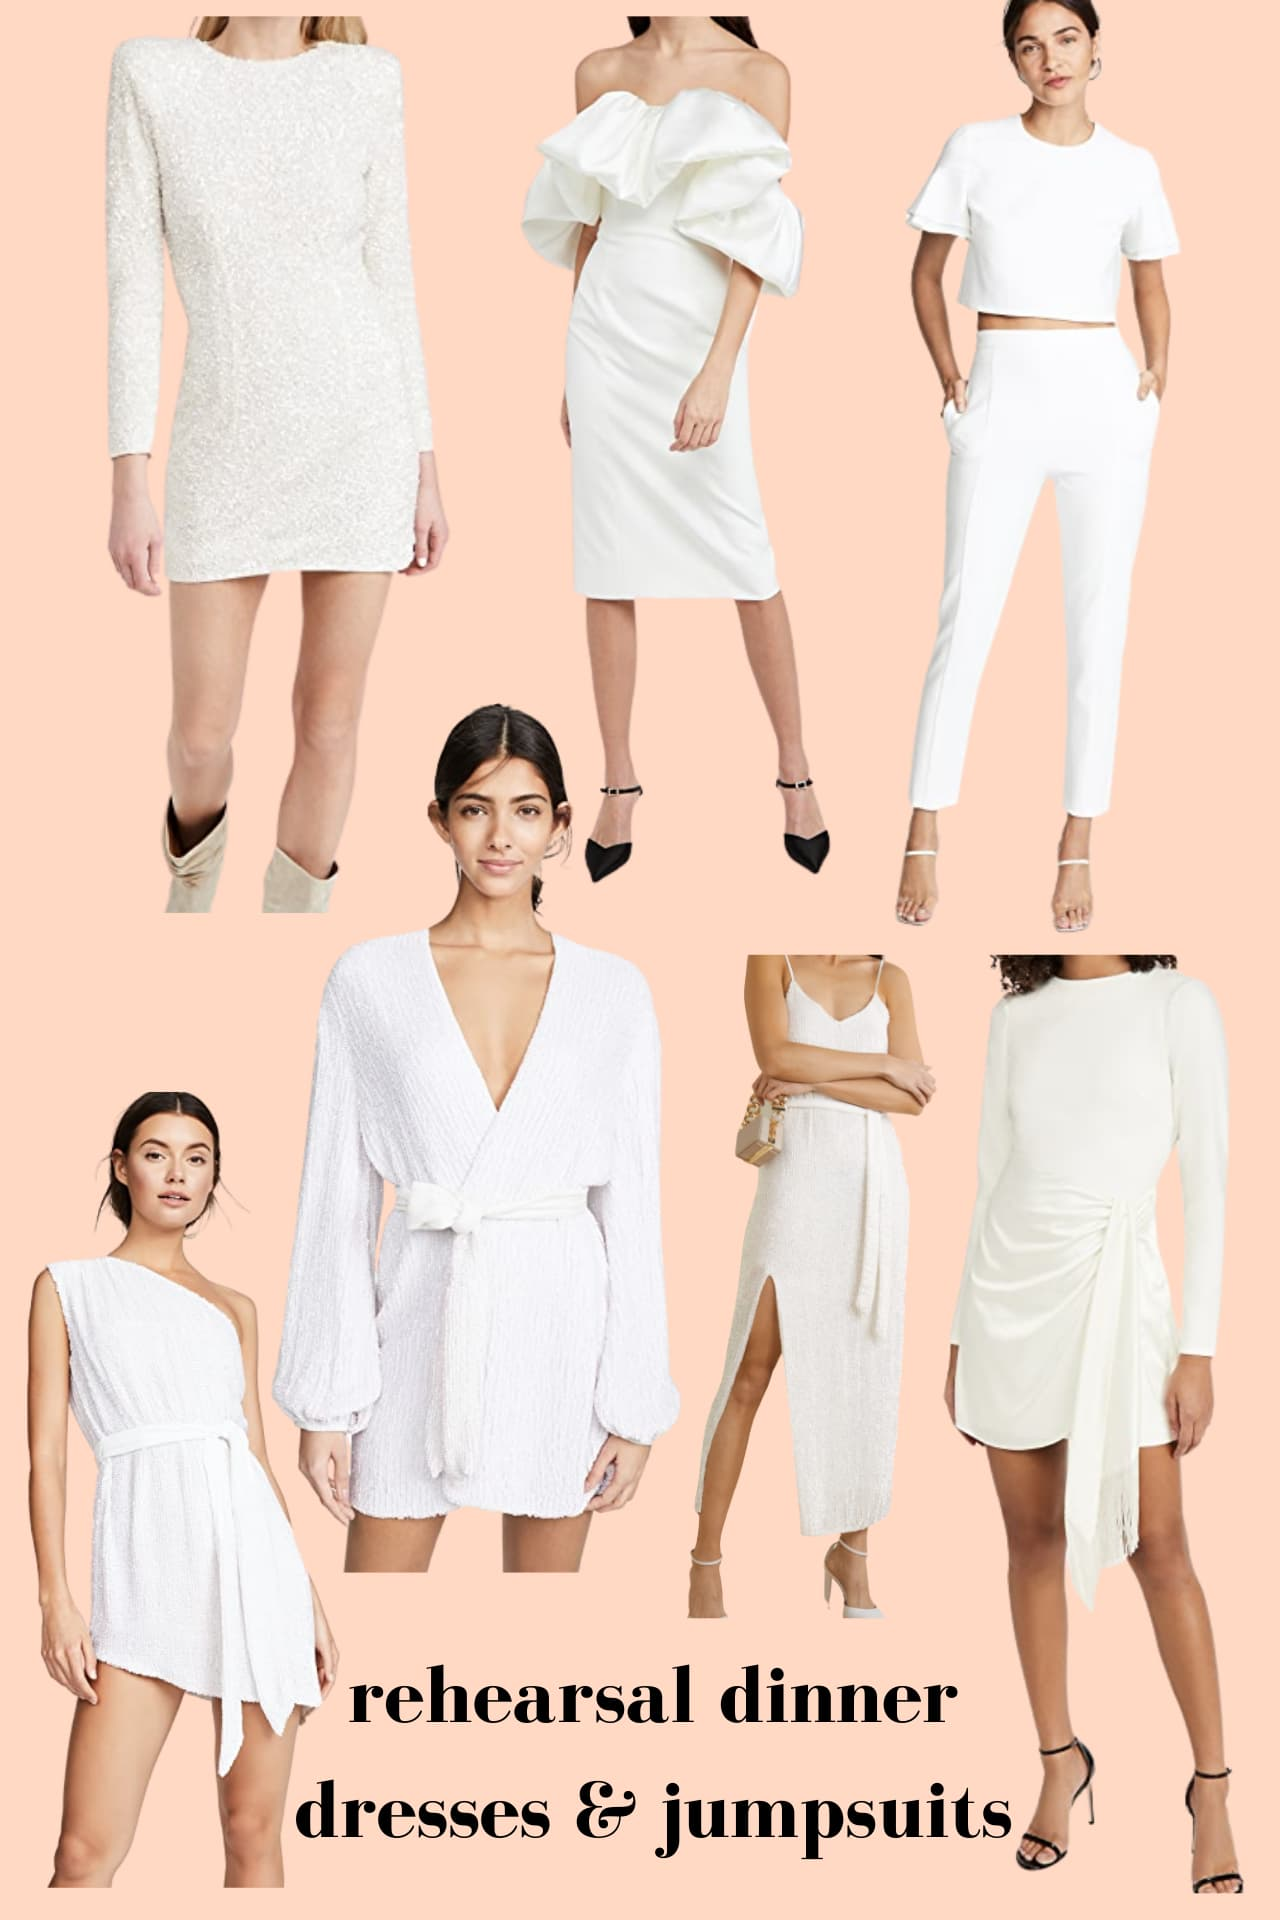 Rehearsal Dinner Dresses & Jumpsuits